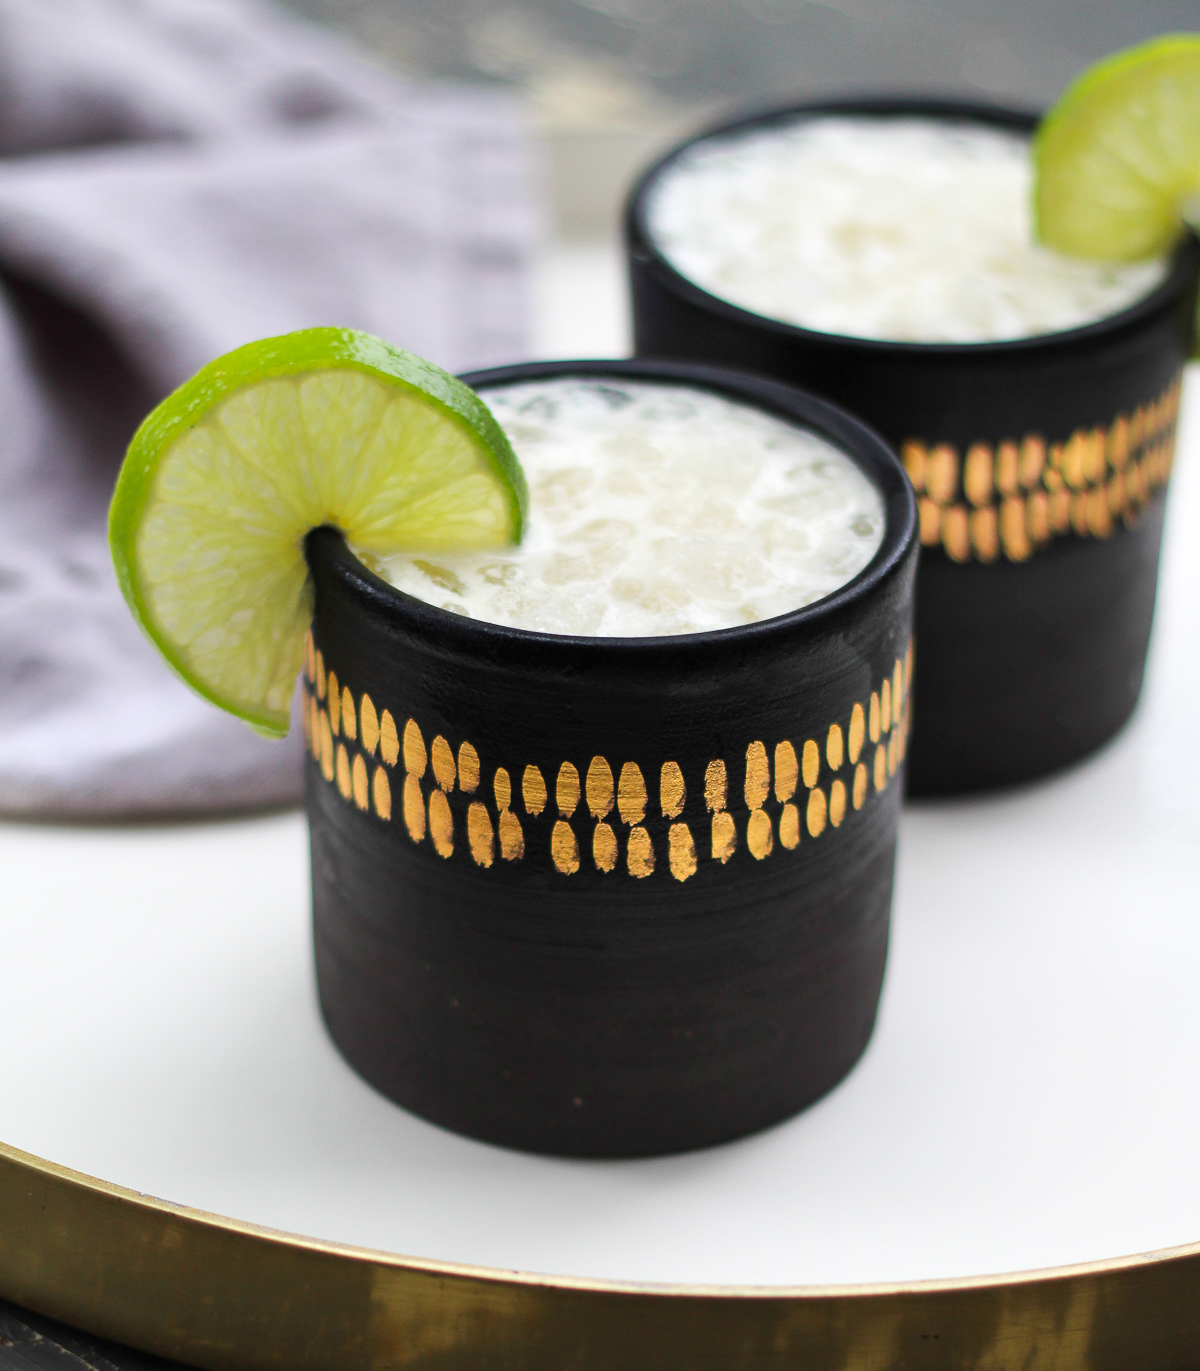 put the lime in the coconut cocktail recipe